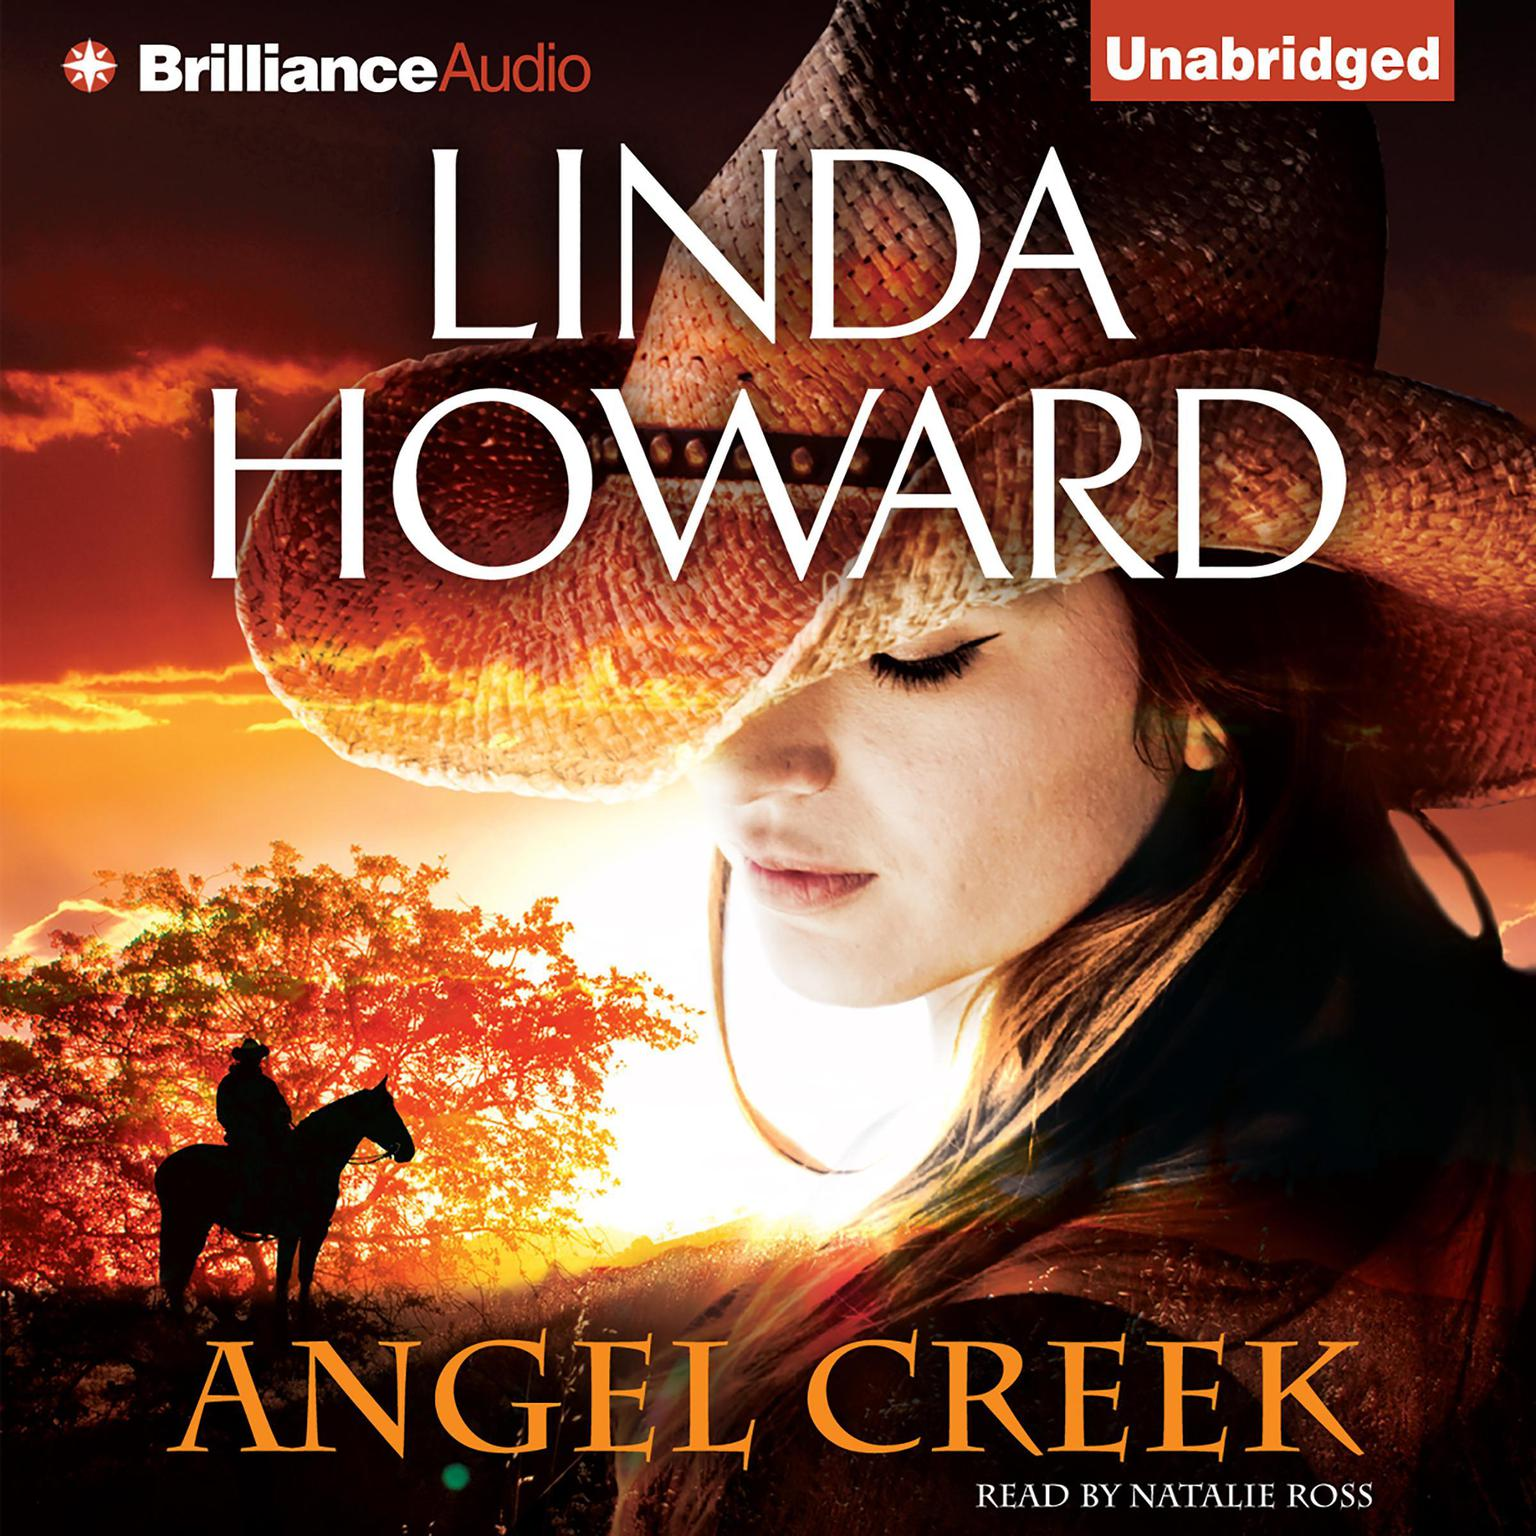 Printable Angel Creek Audiobook Cover Art